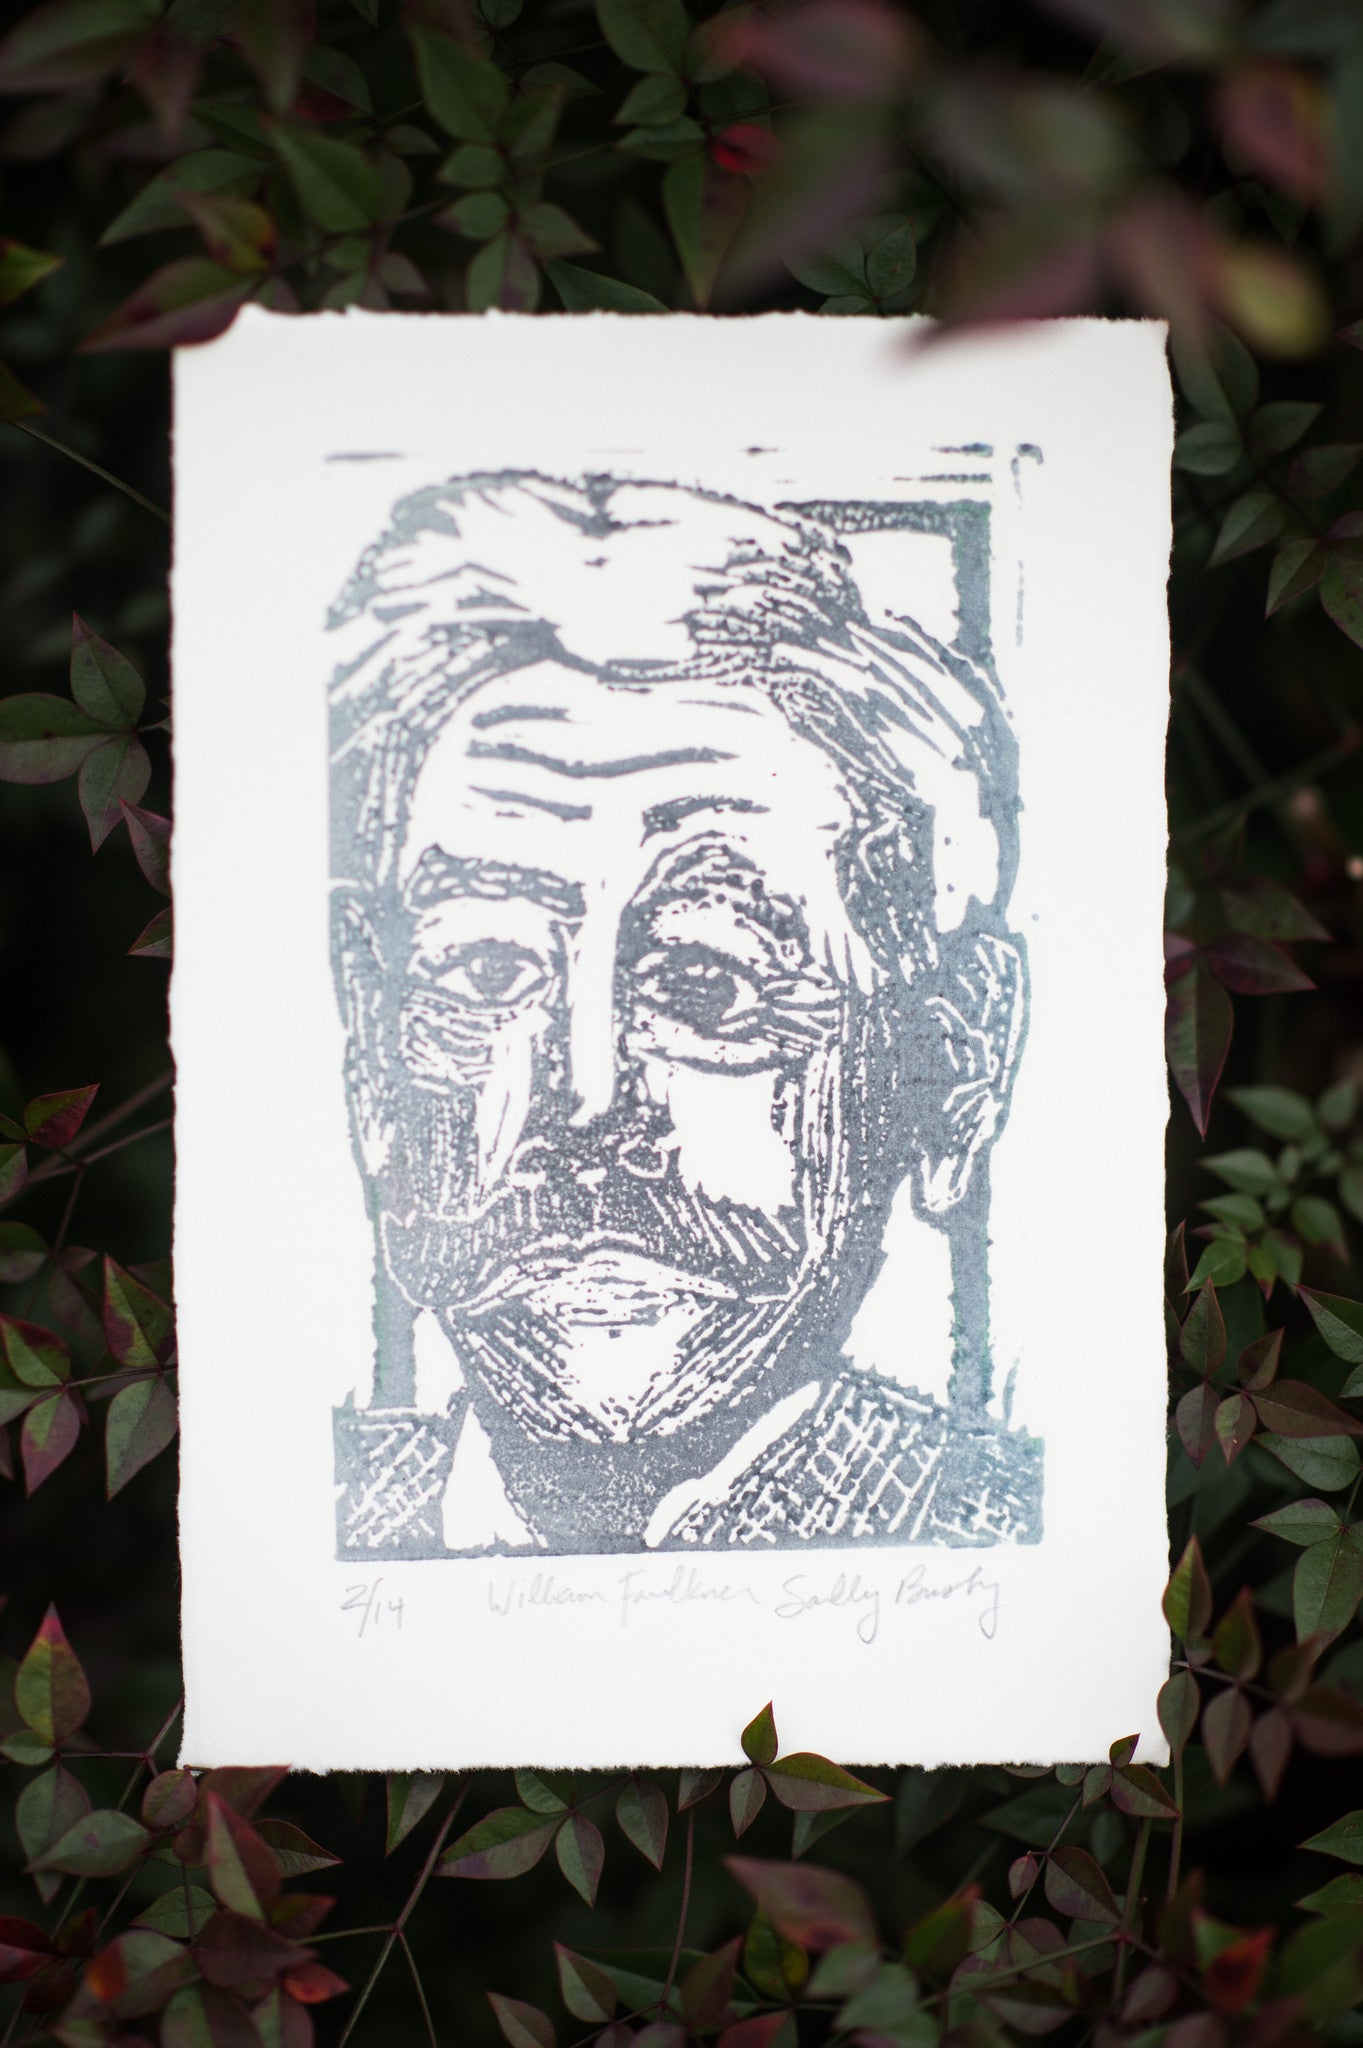 William Faulkner Hand Pulled Linocut Art Print literary gift by Eastgrove Studio